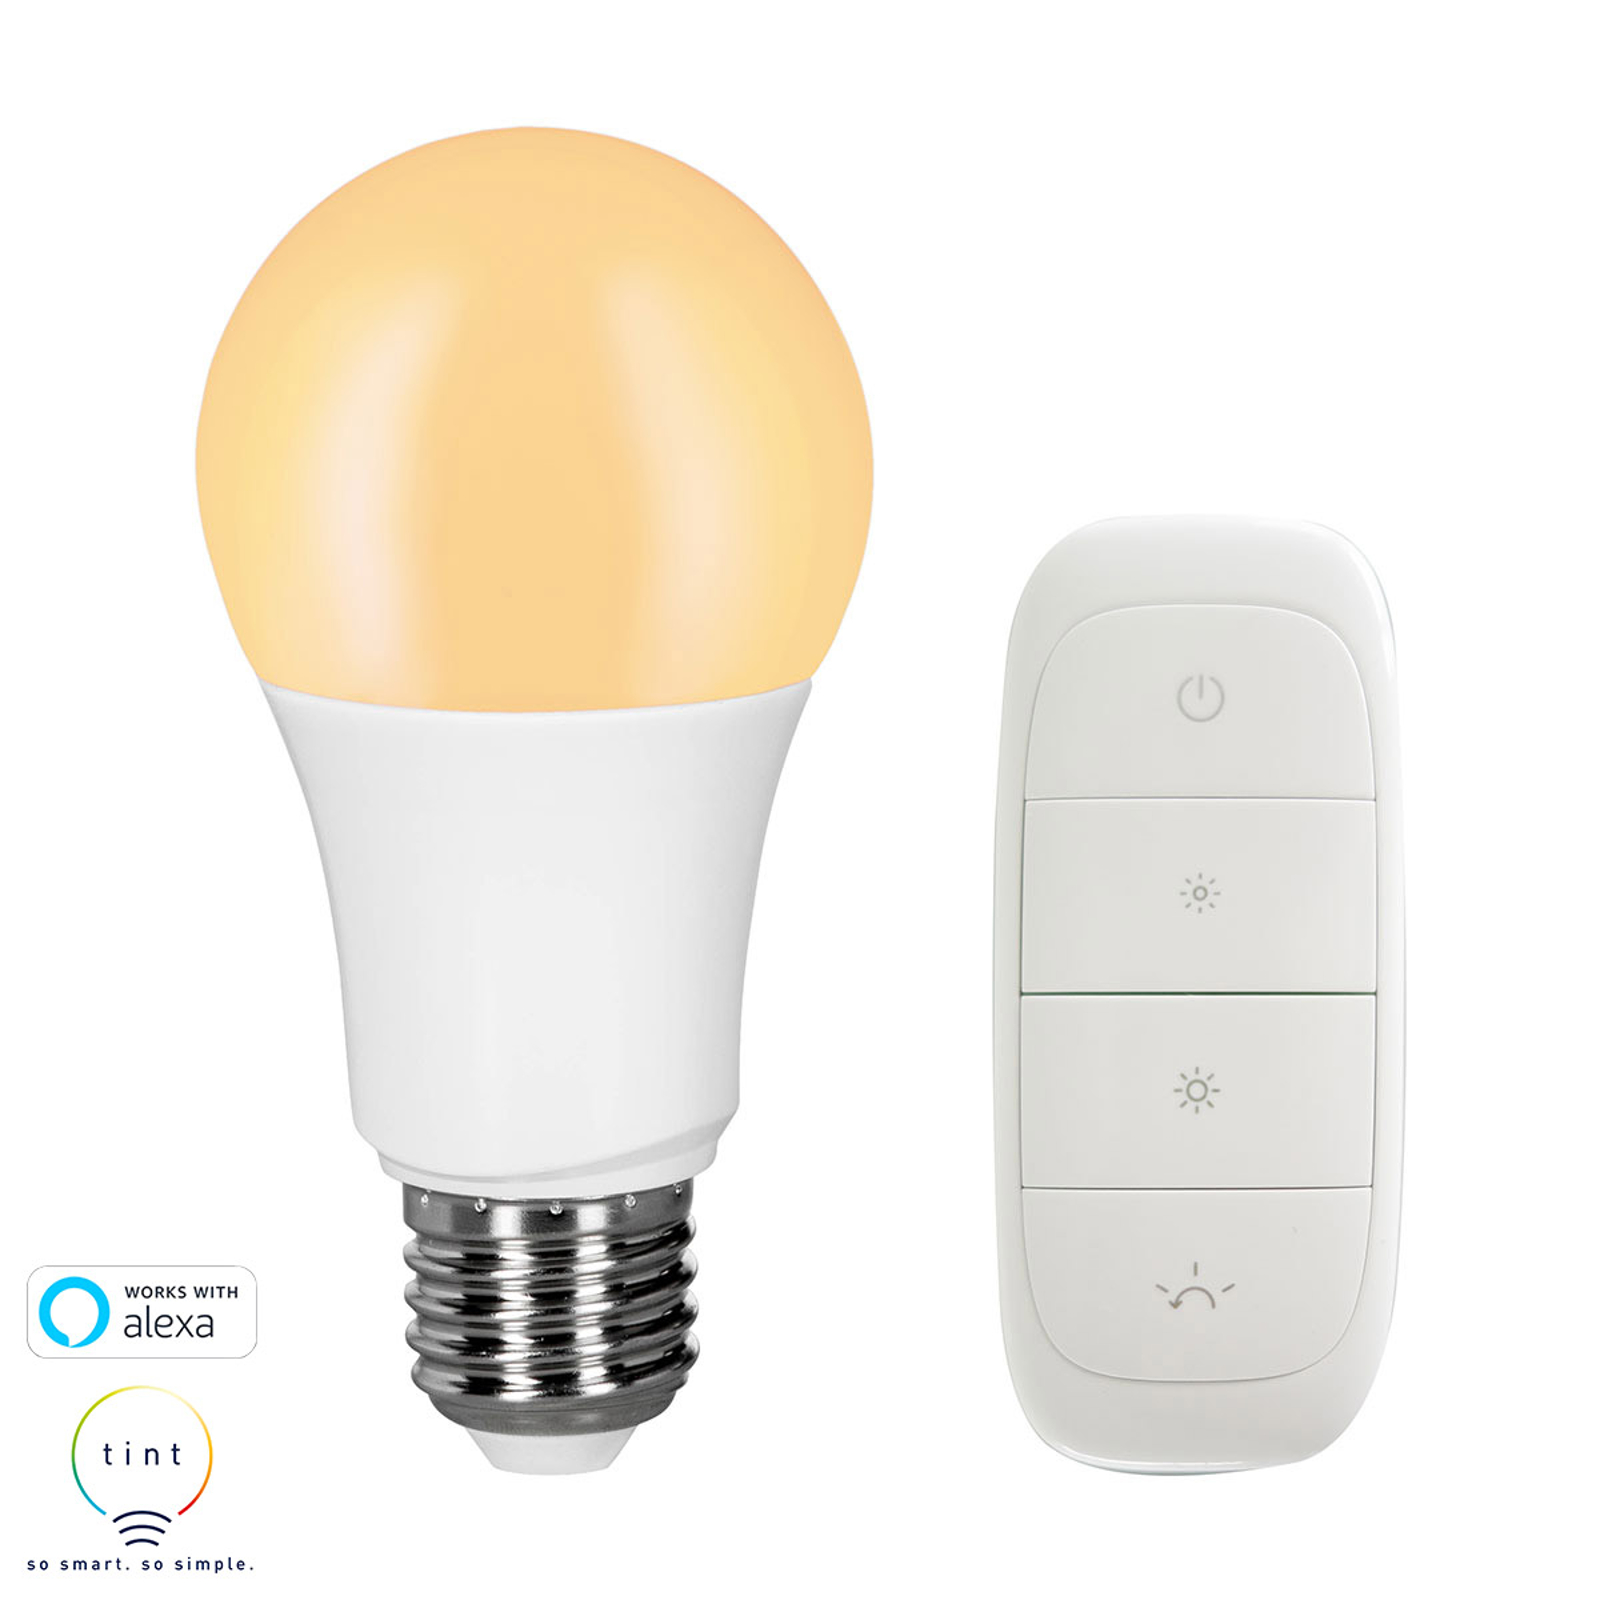 Müller Licht tint dimming ampoule LED E27 9W+dimm.